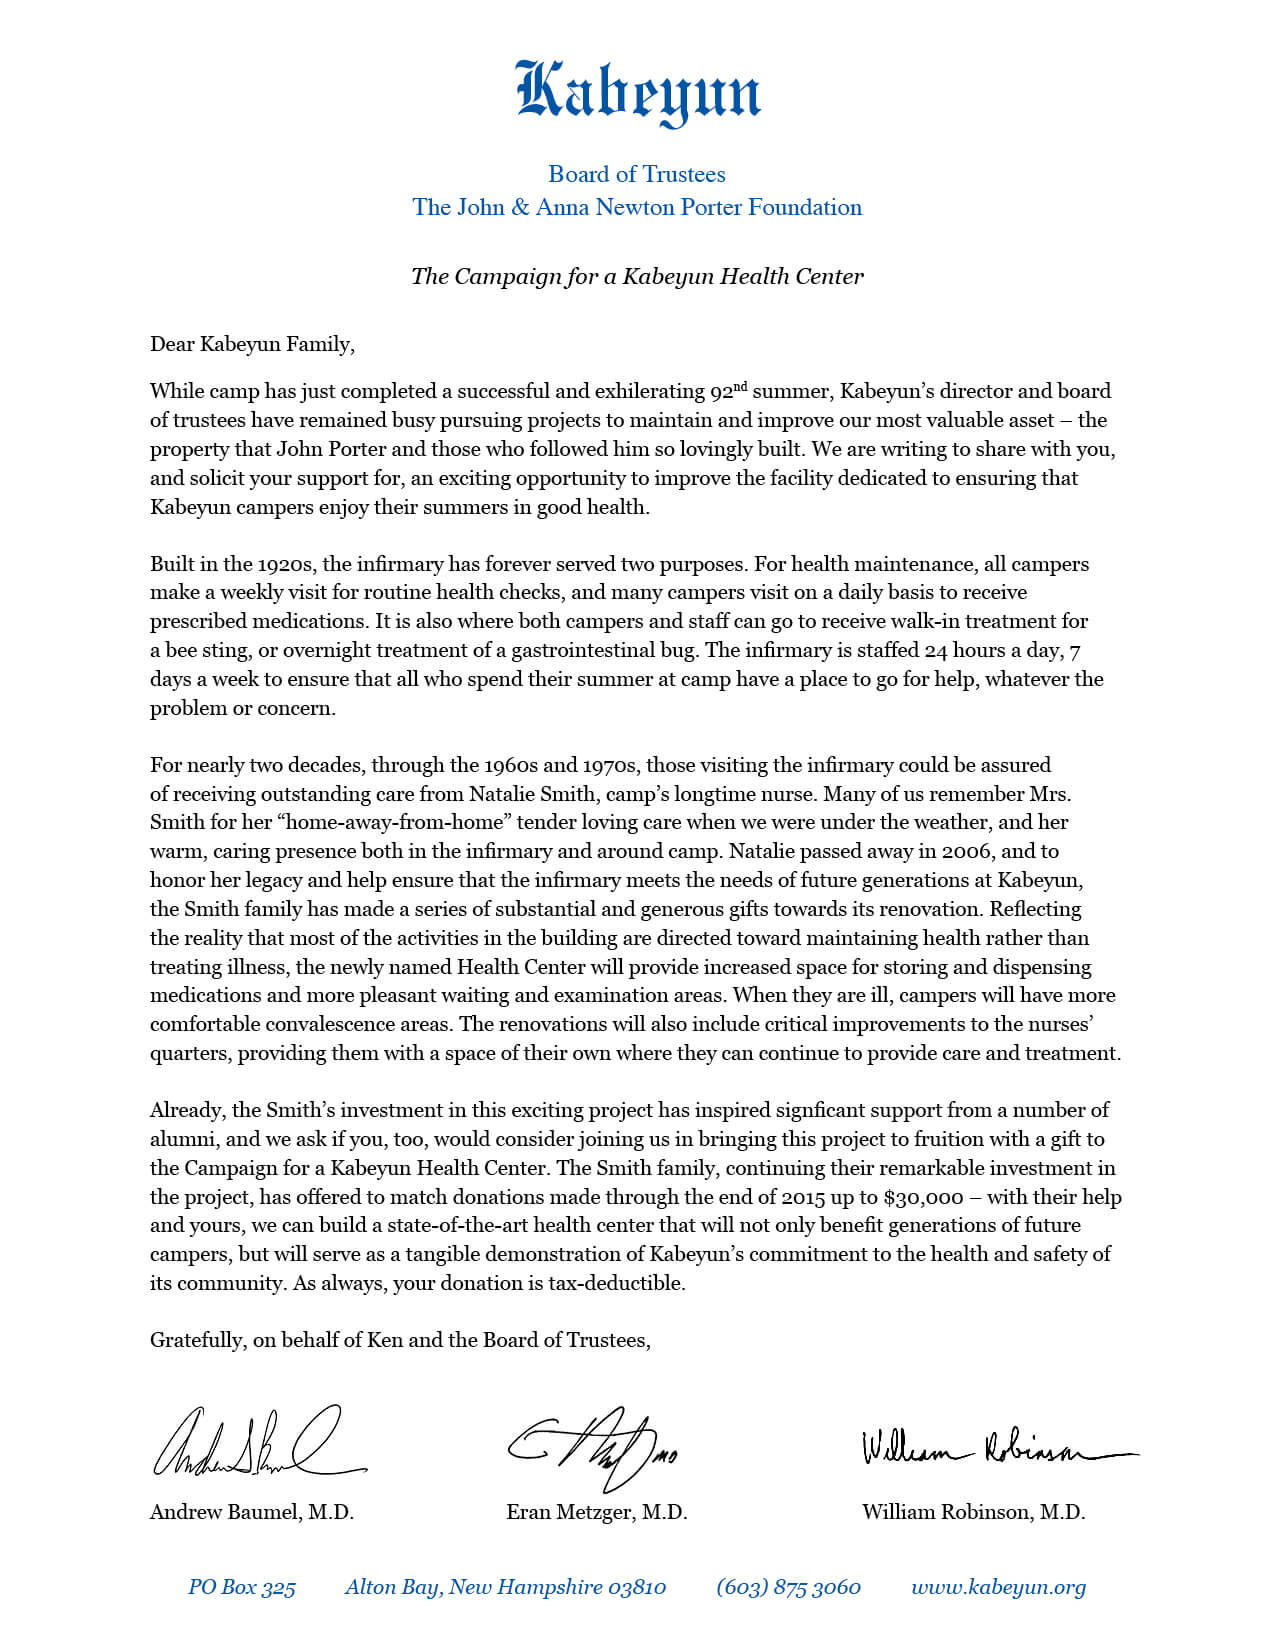 Read the Health Center Campaign appeal letter from members of Kabeyun's Board of Trustees